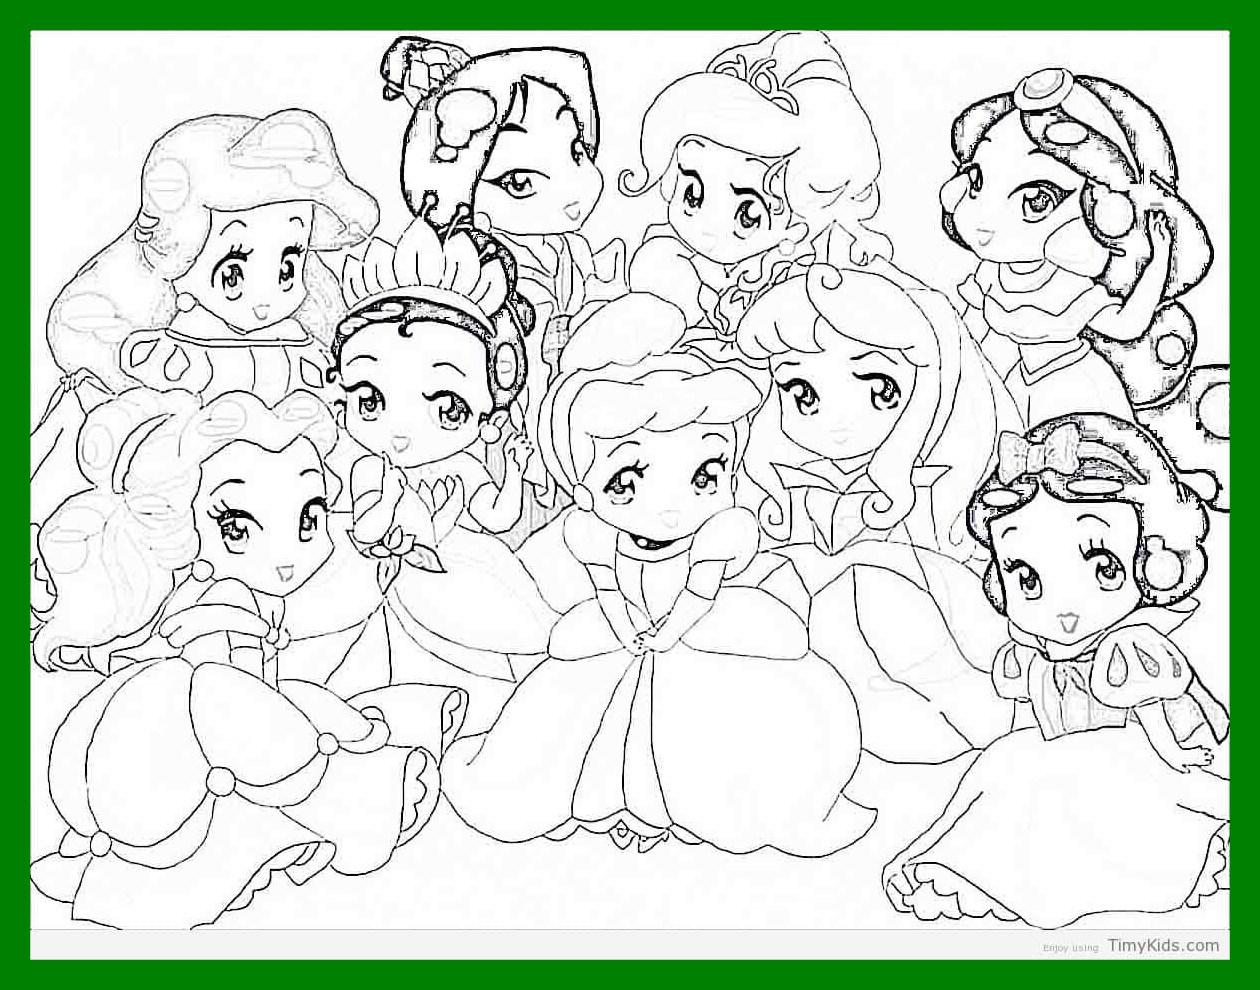 1260x990 Unbelievable Http Timykids Disney Baby Princess Coloring Pages